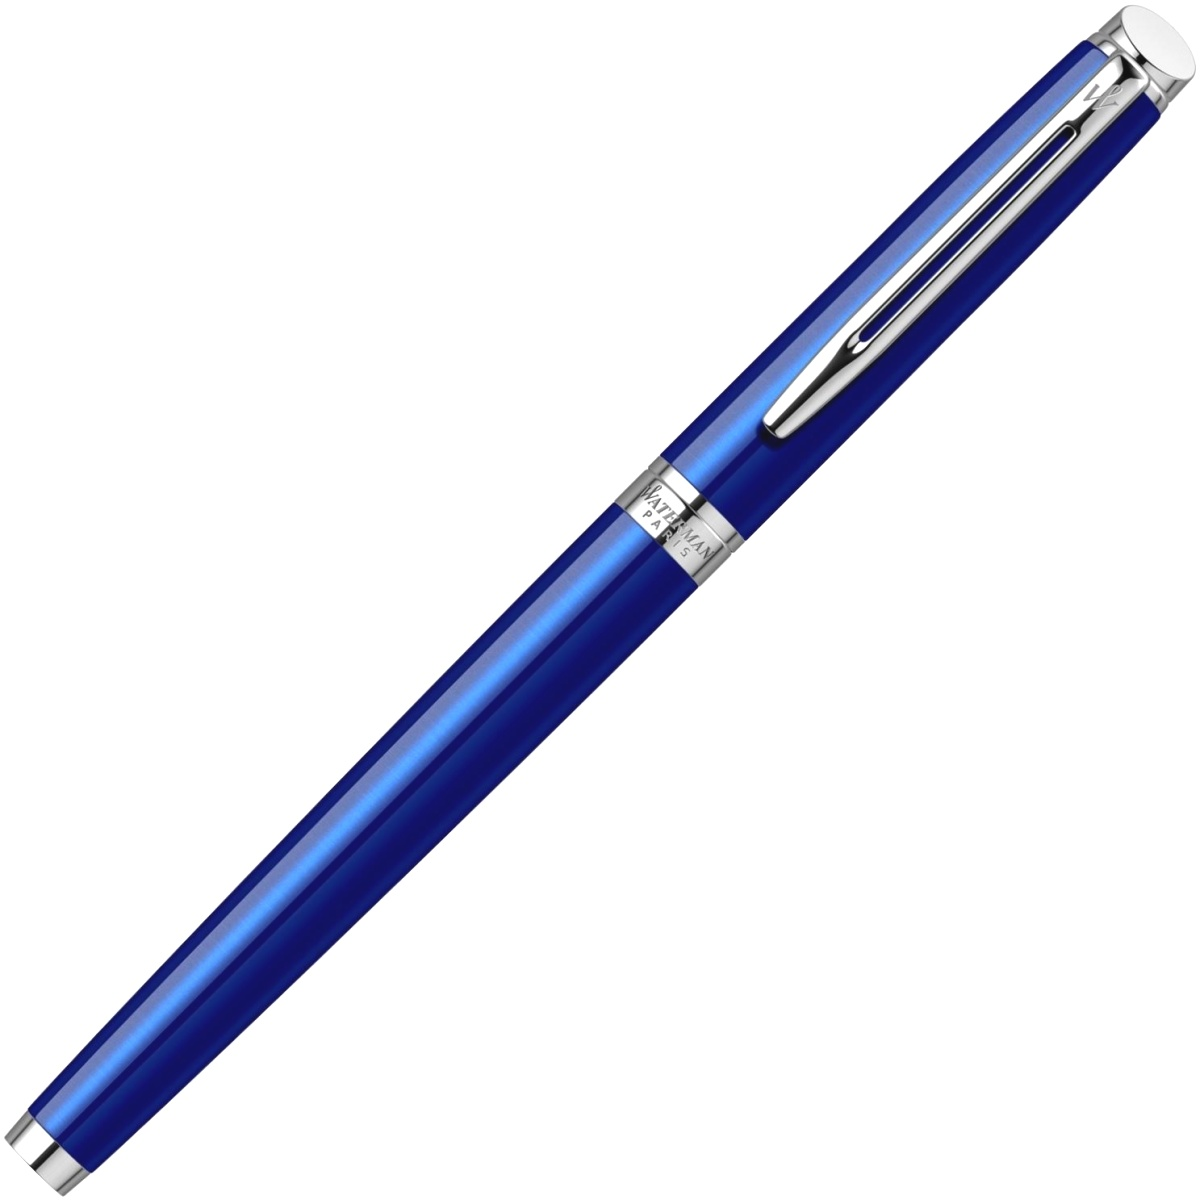 Ручка перьевая Waterman Hemisphere 2018, Bright Blue CT (Перо F), фото 6